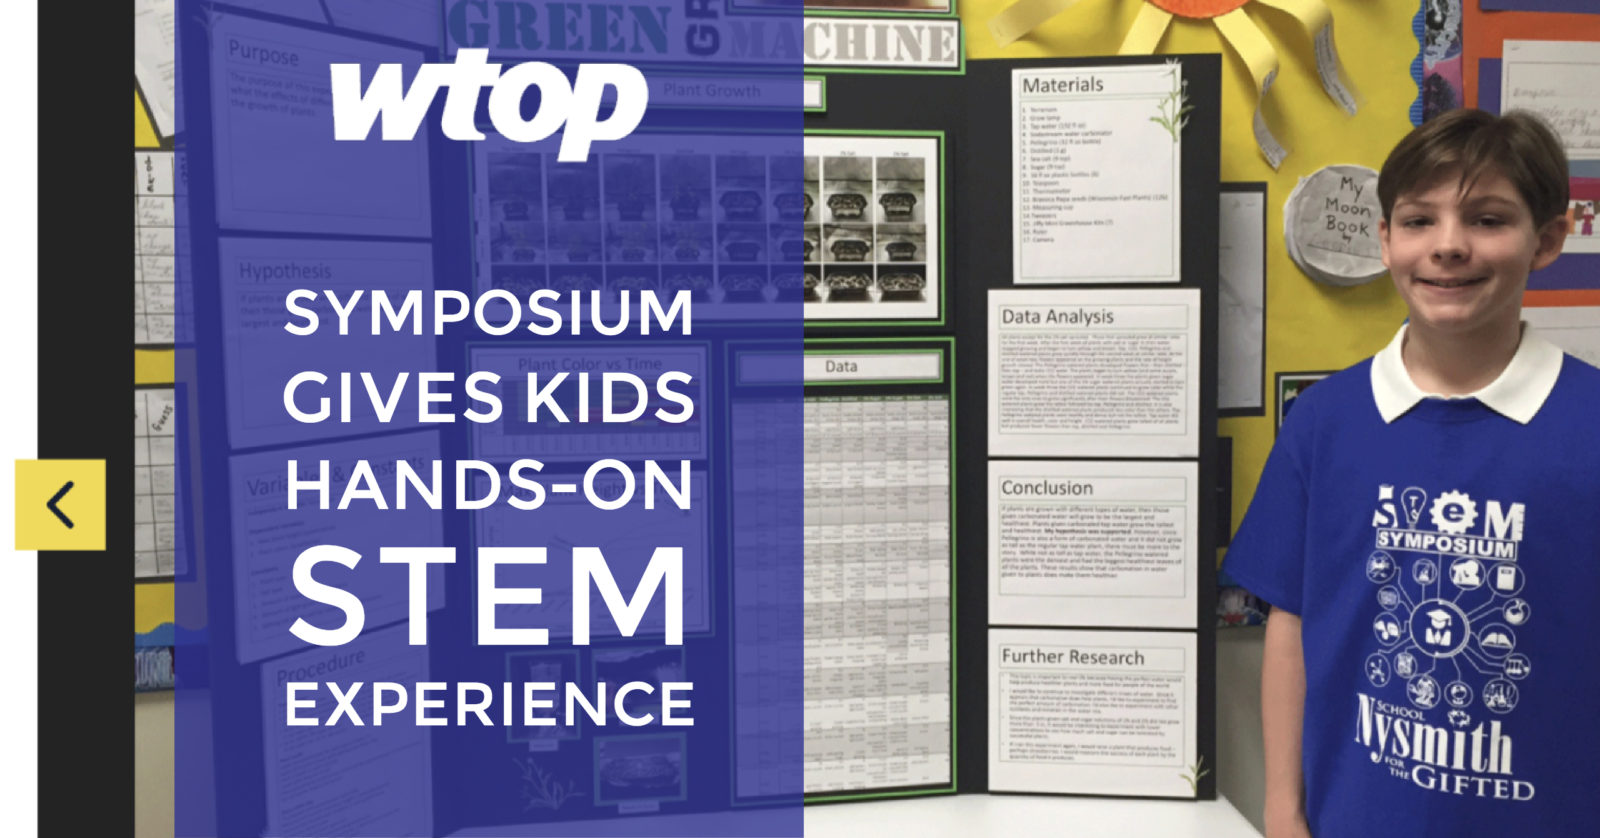 Symposium gives kids hands-on STEM experience - WTOP